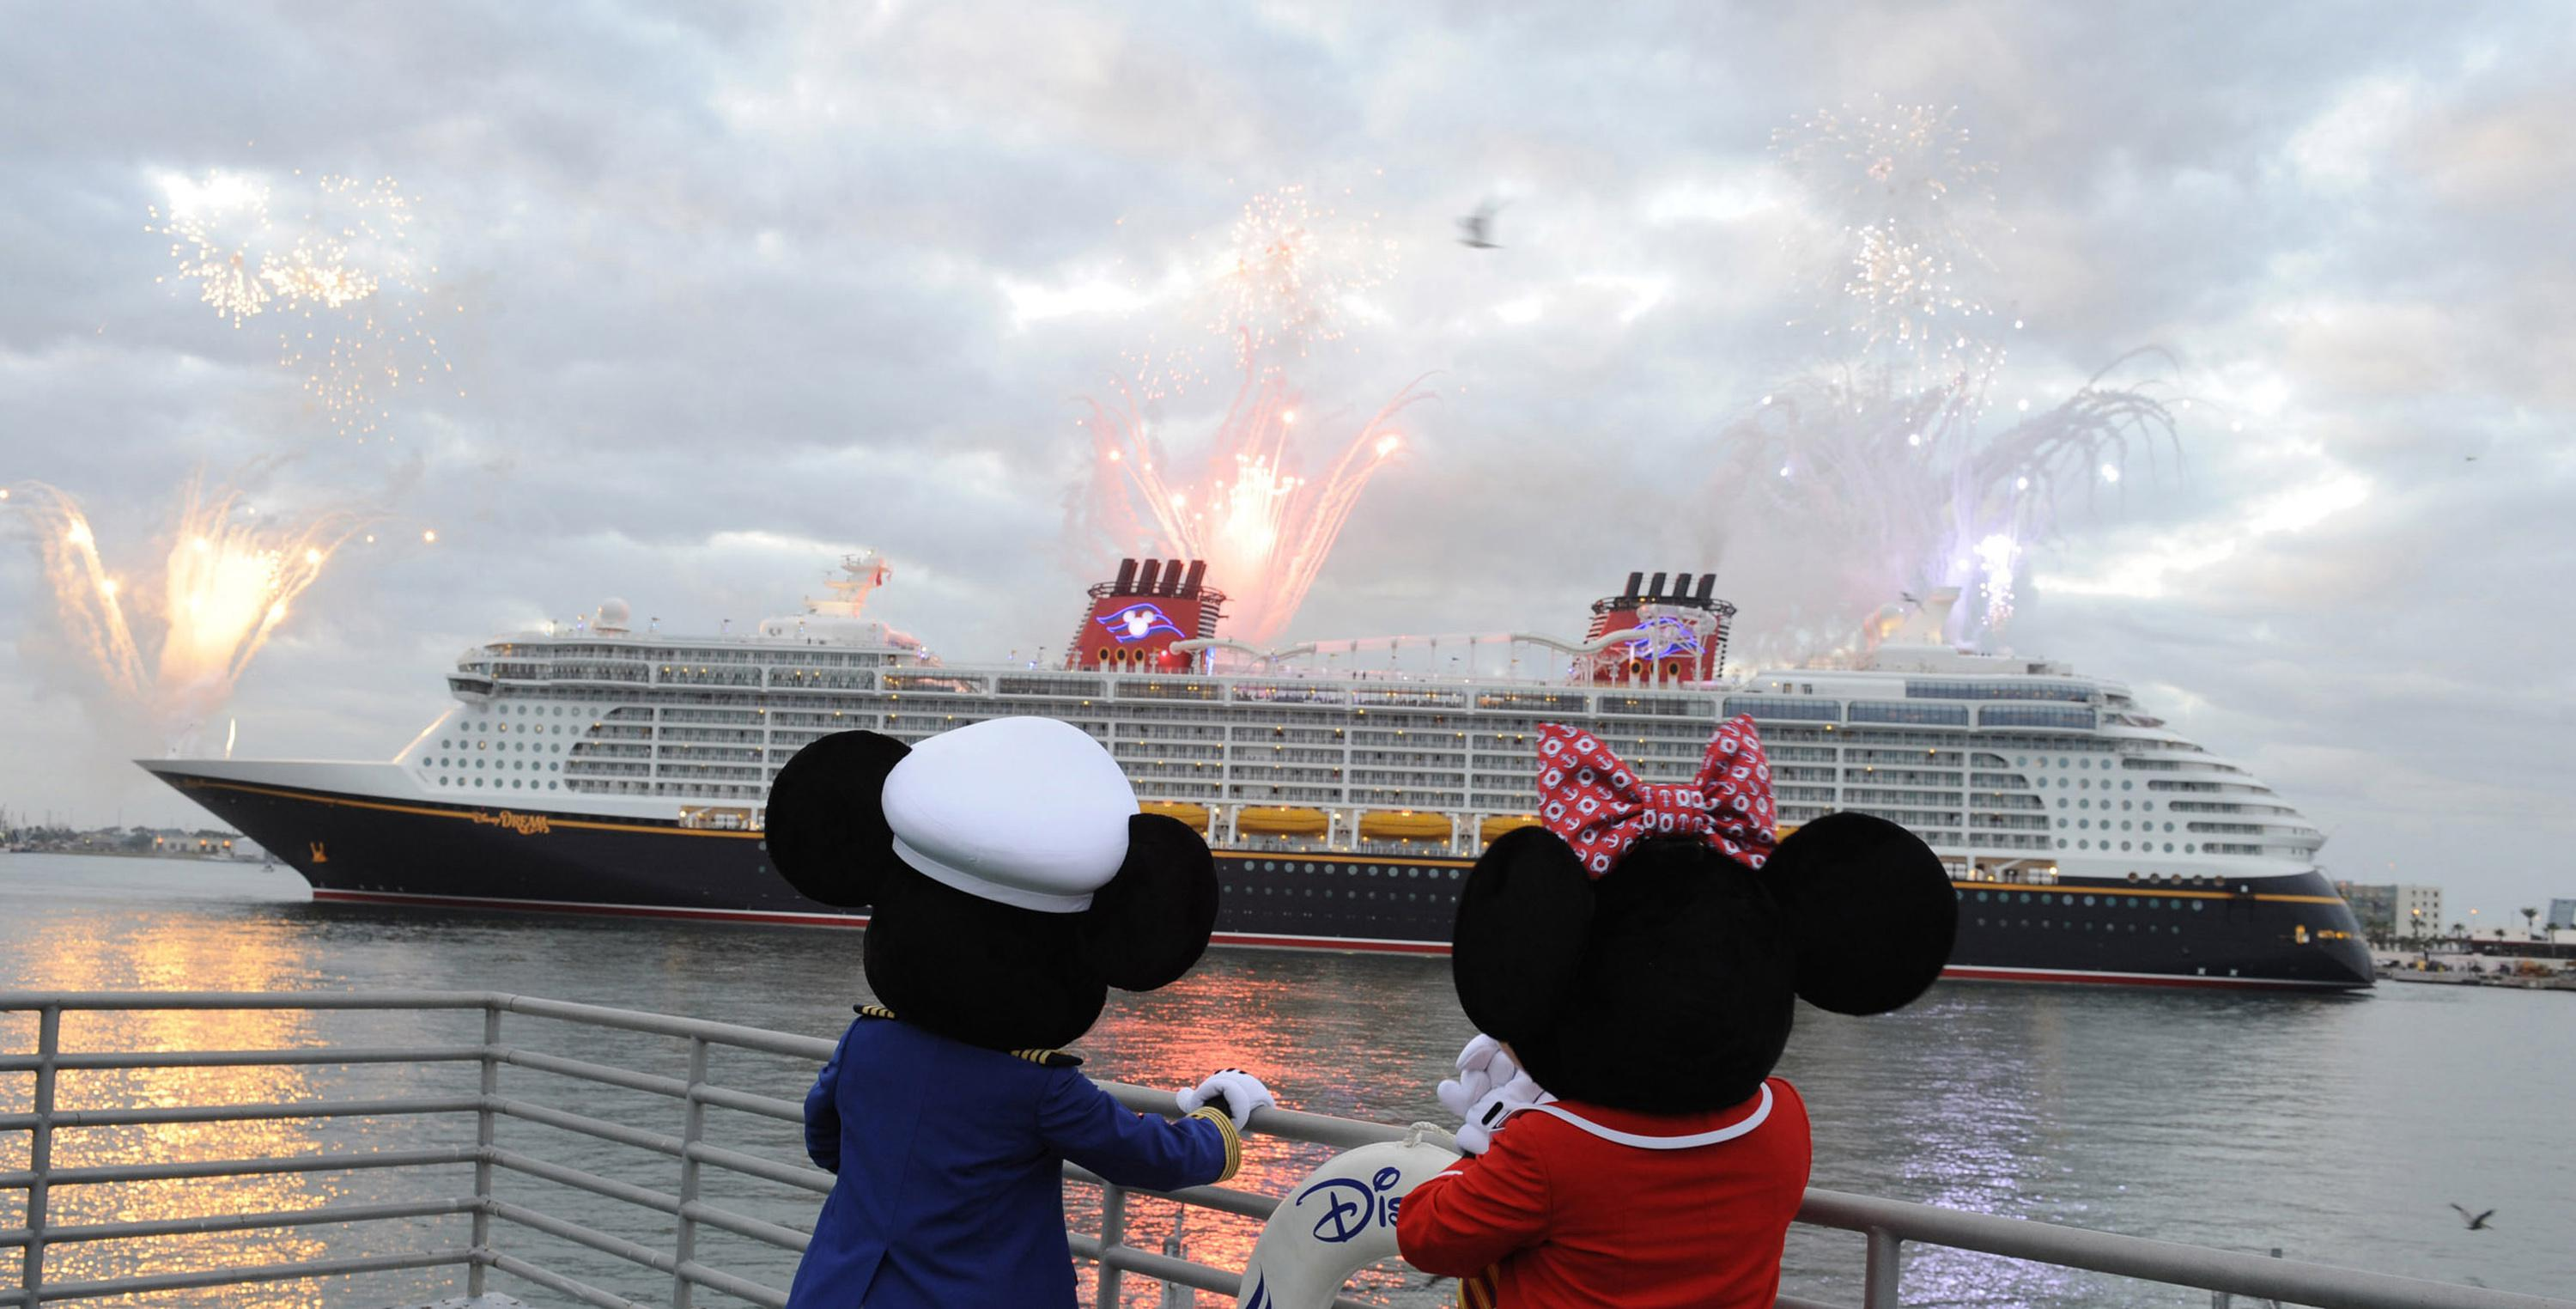 The Disney Dream, Disney Cruise Line's Newest Ship Arrives For The First Time To Her Home Port